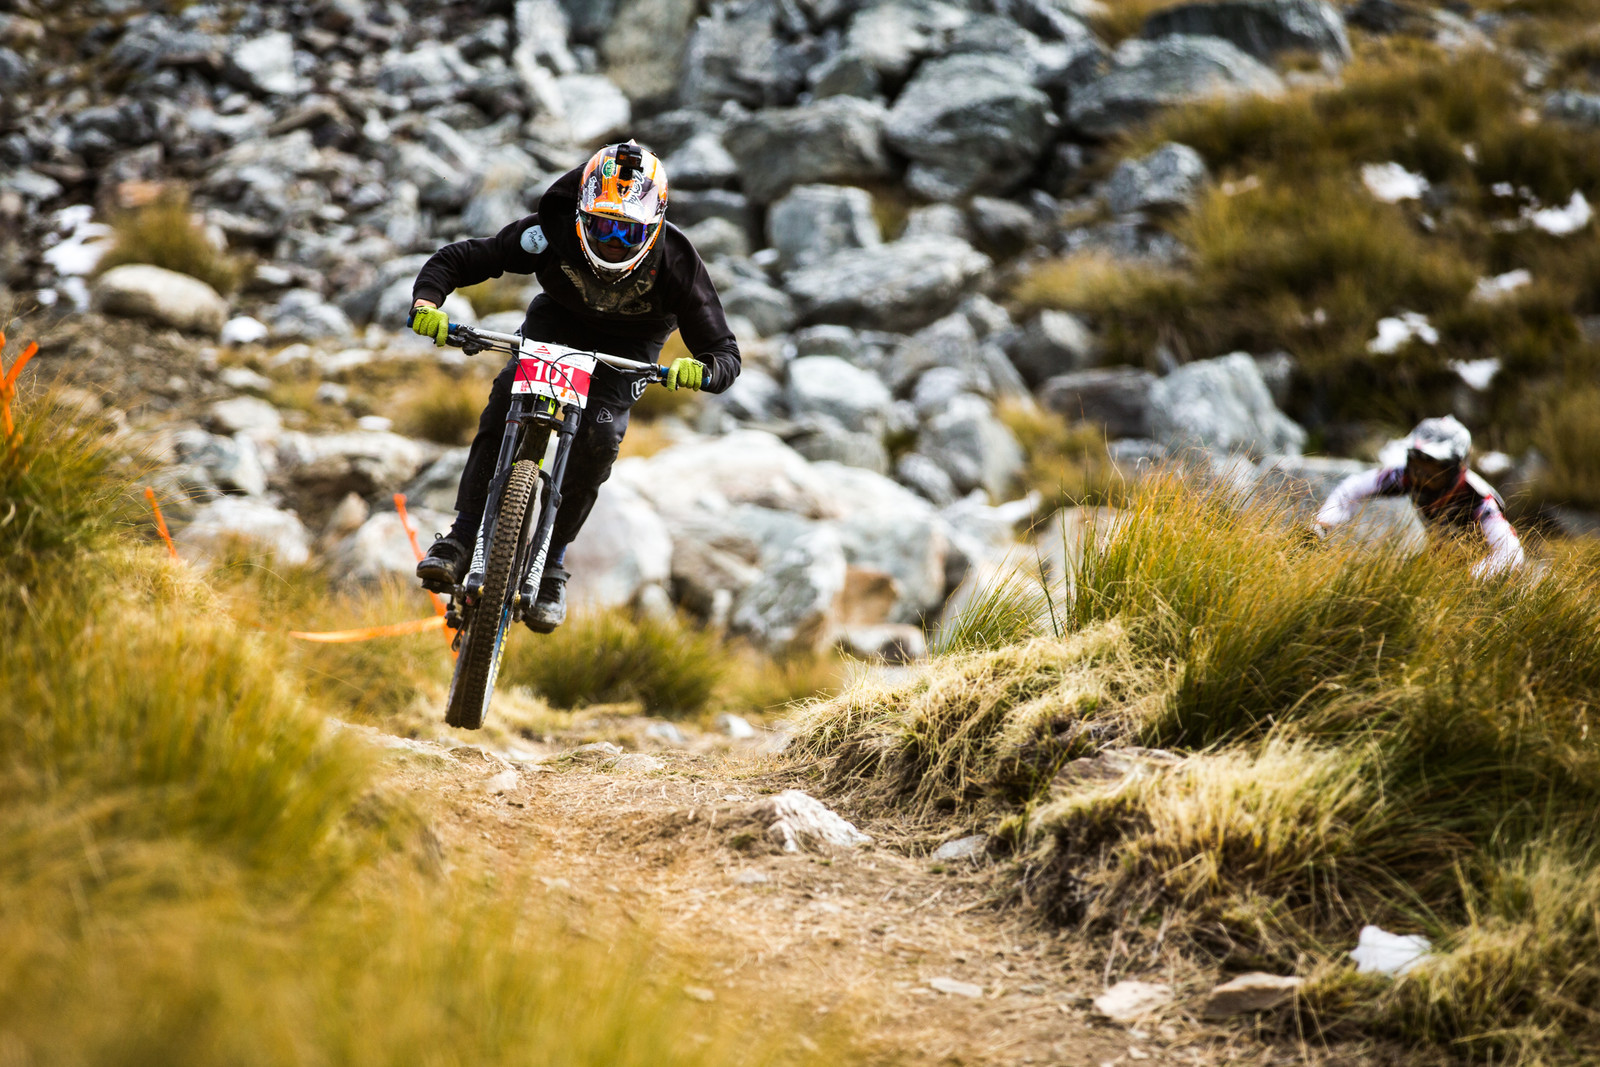 Alex Barke - Blenki, Brook & More - 2018 NZ National Champs Day 1 - Mountain Biking Pictures - Vital MTB